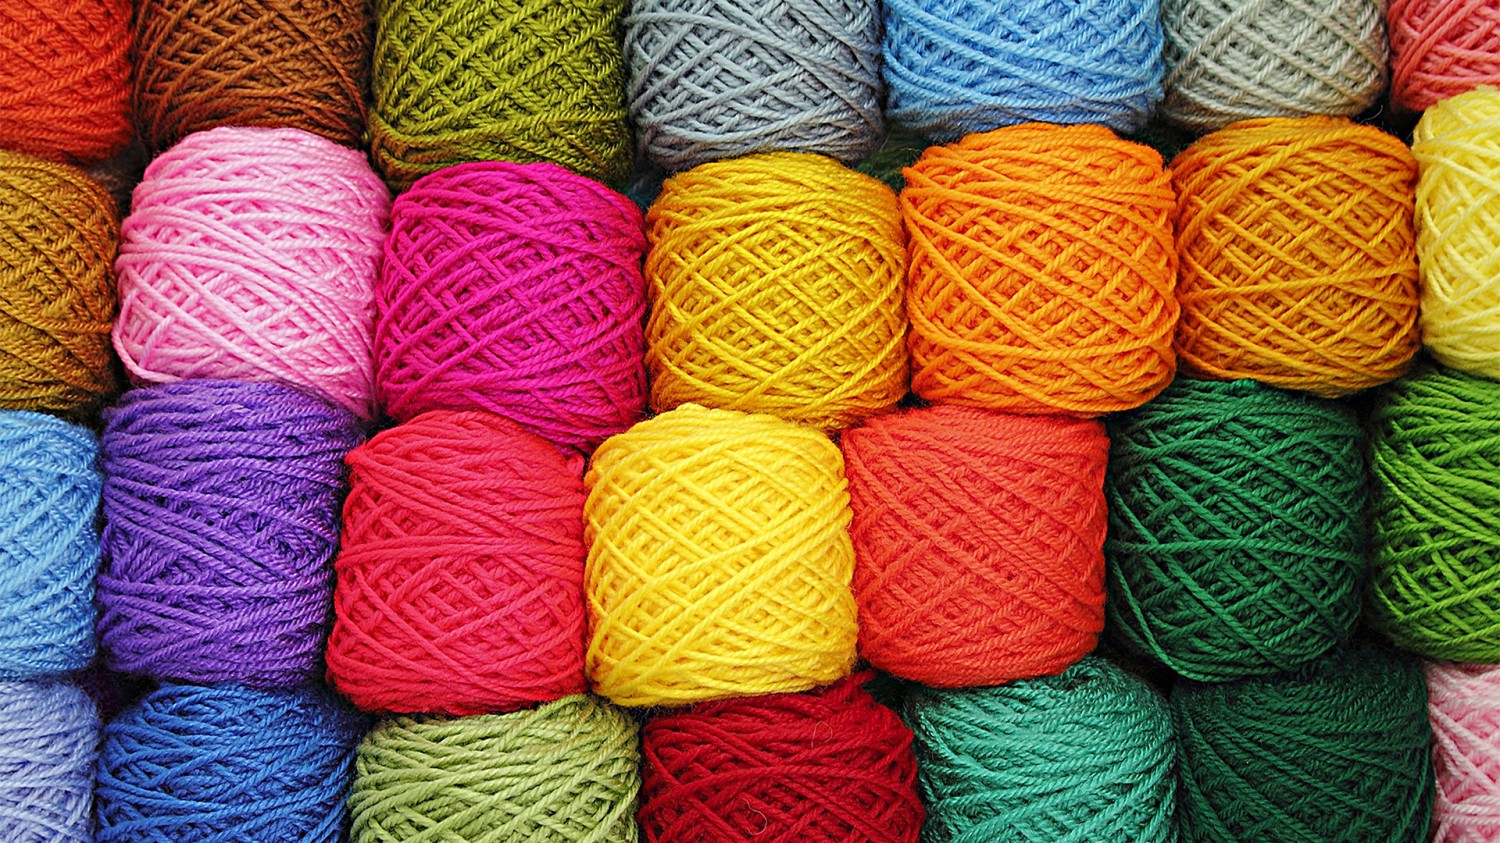 Knitting Images Hd : Knitting amazing details